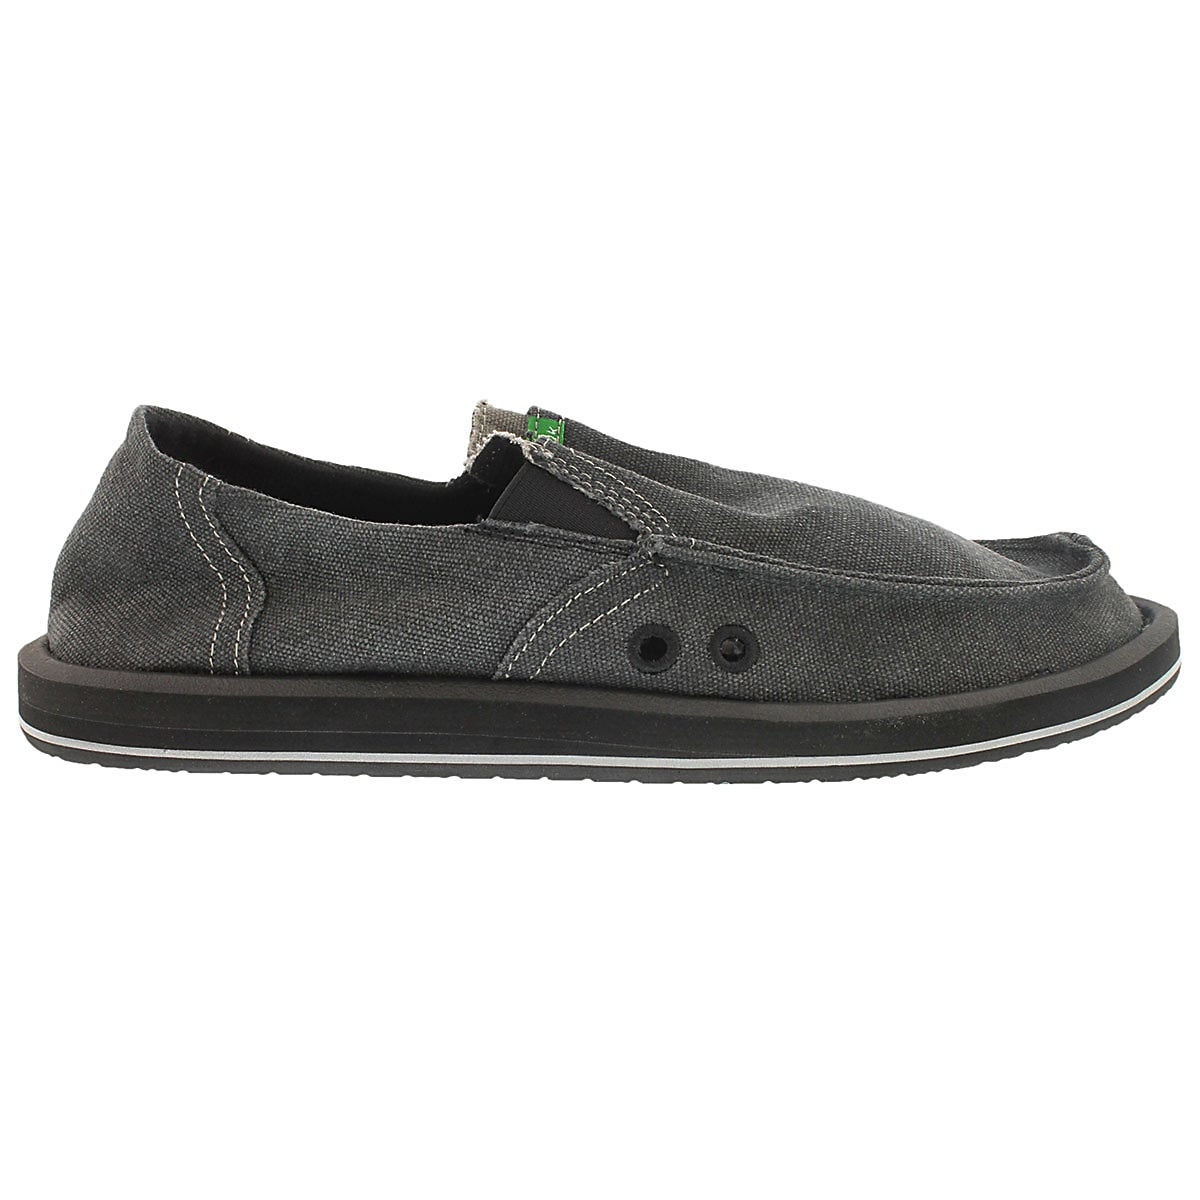 Mns Pick Pocket charcoal slip on shoe